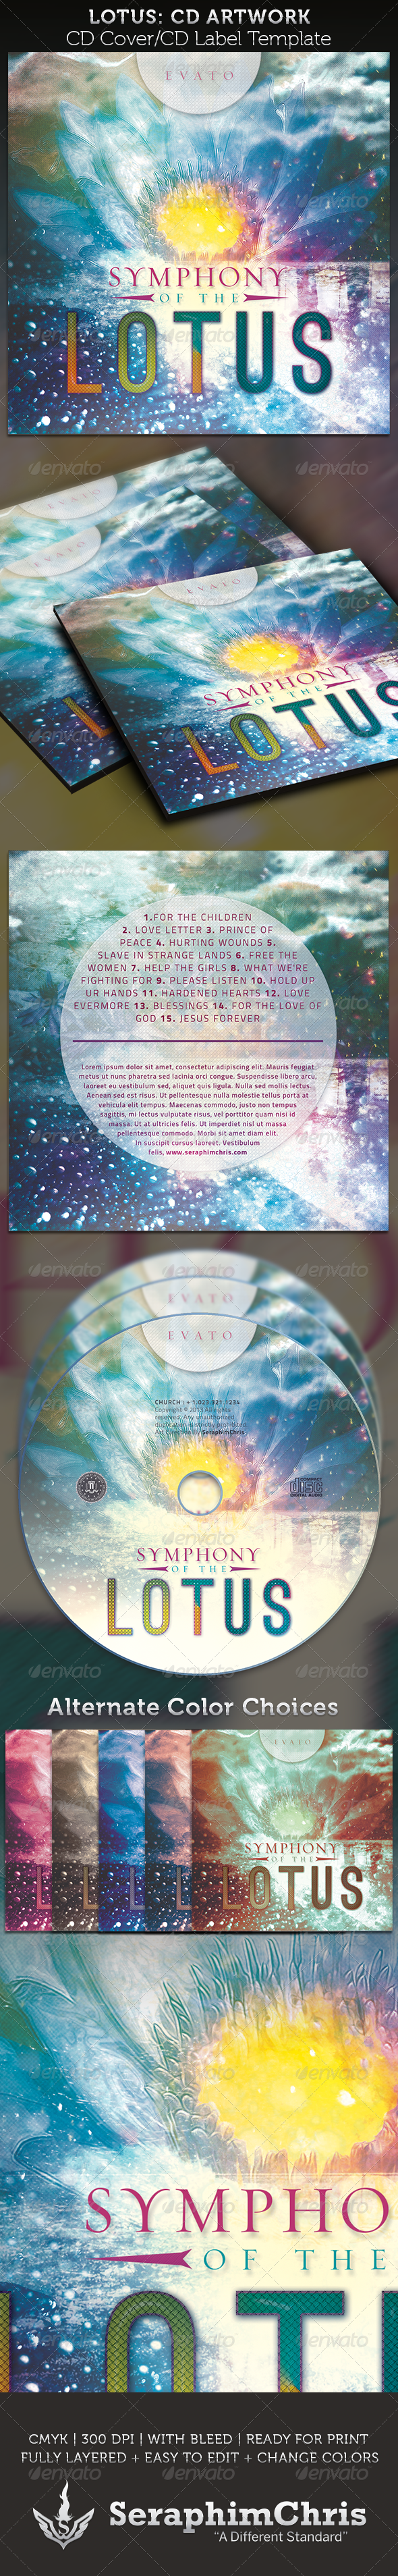 Symphony of the Lotus: CD Cover Artwork Template - CD & DVD Artwork Print Templates